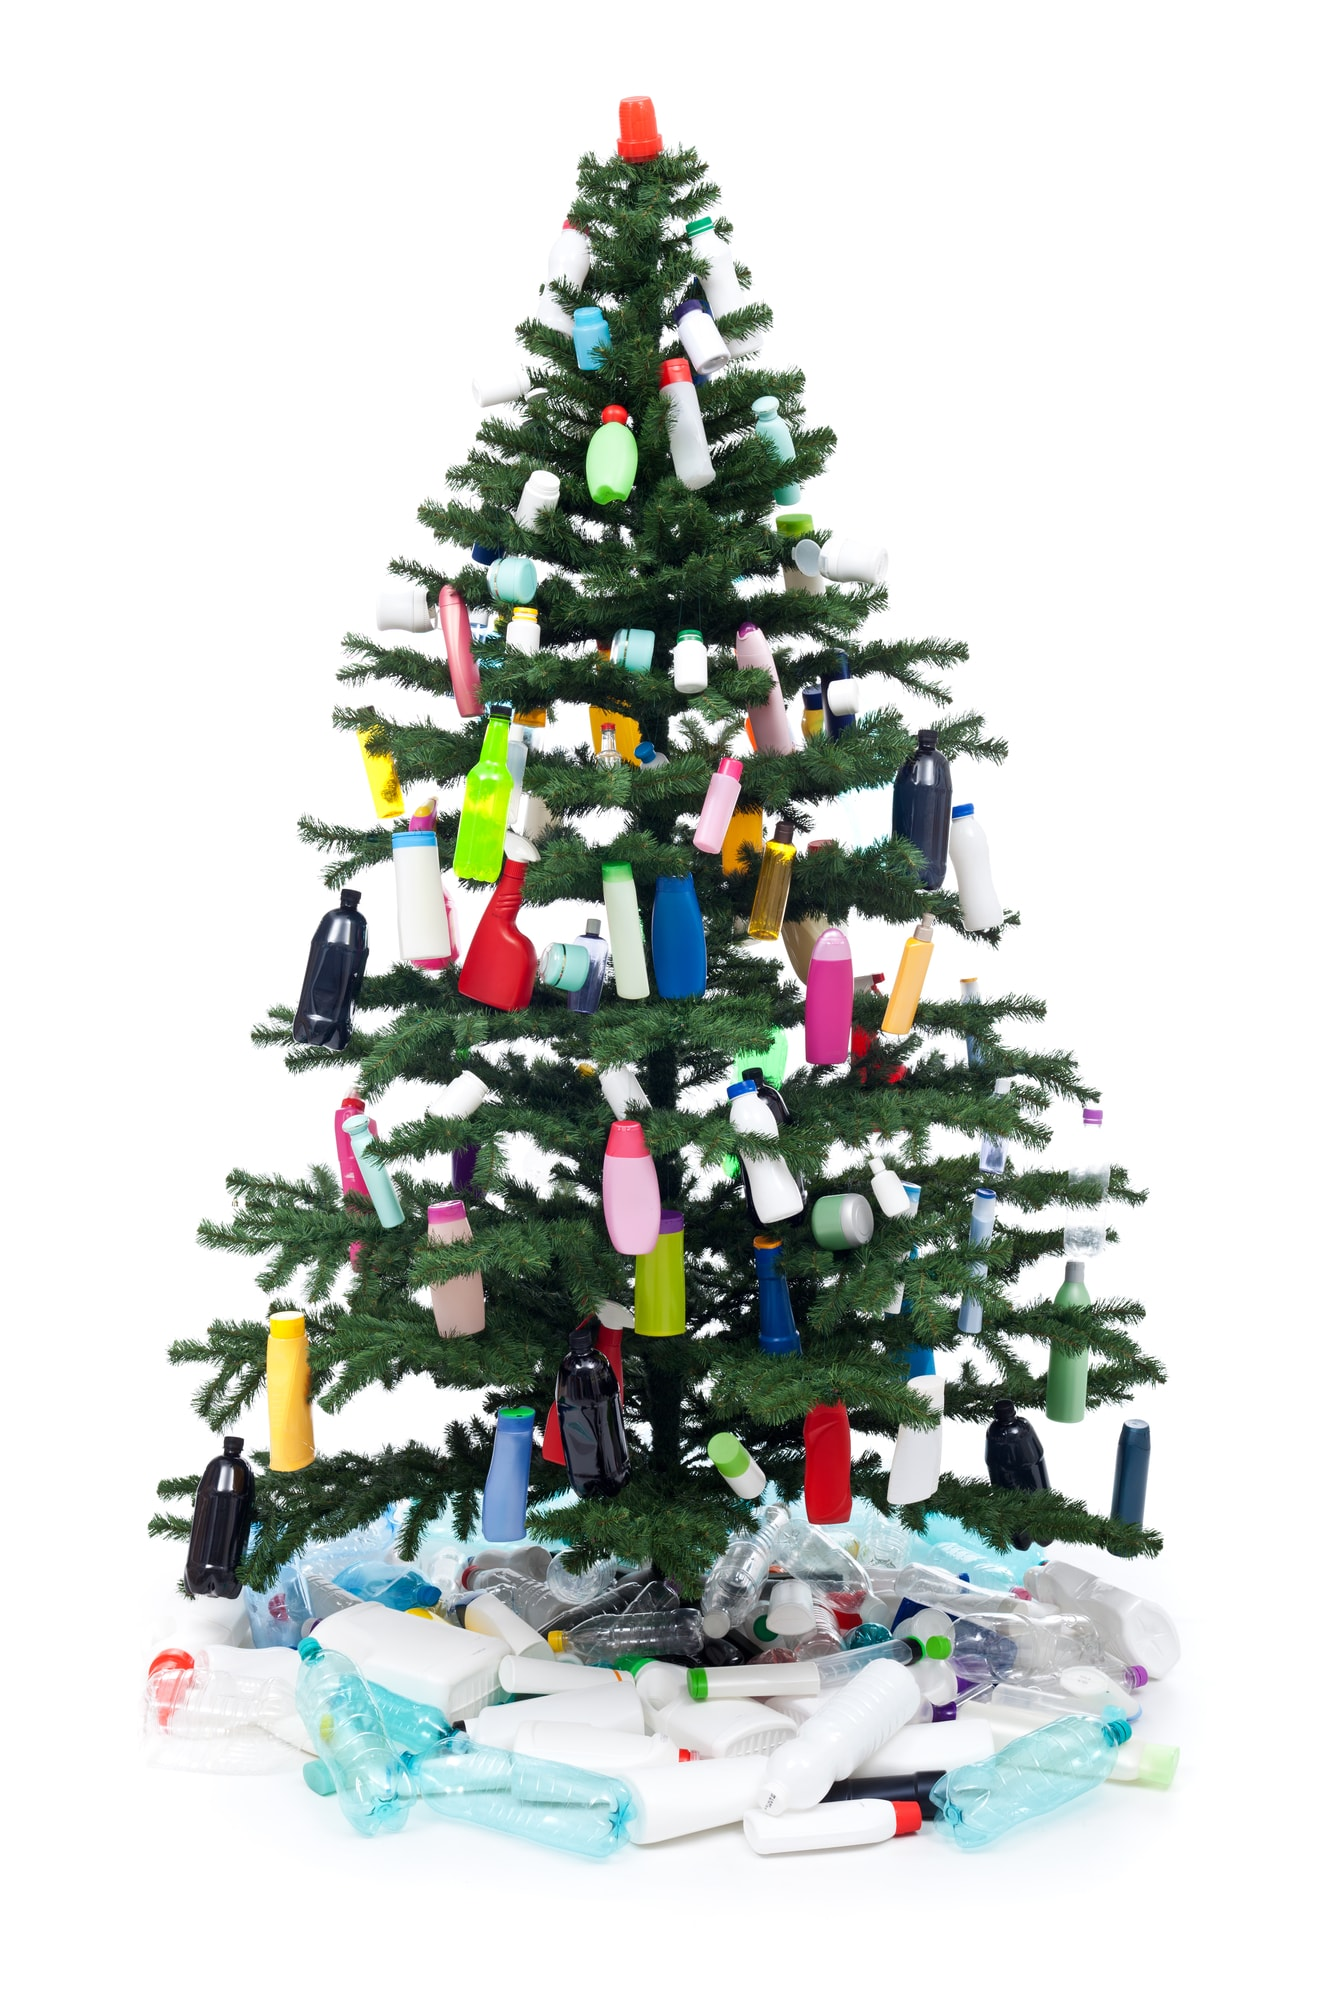 Plastic bottles waste decorating a christmas tree - environment concept